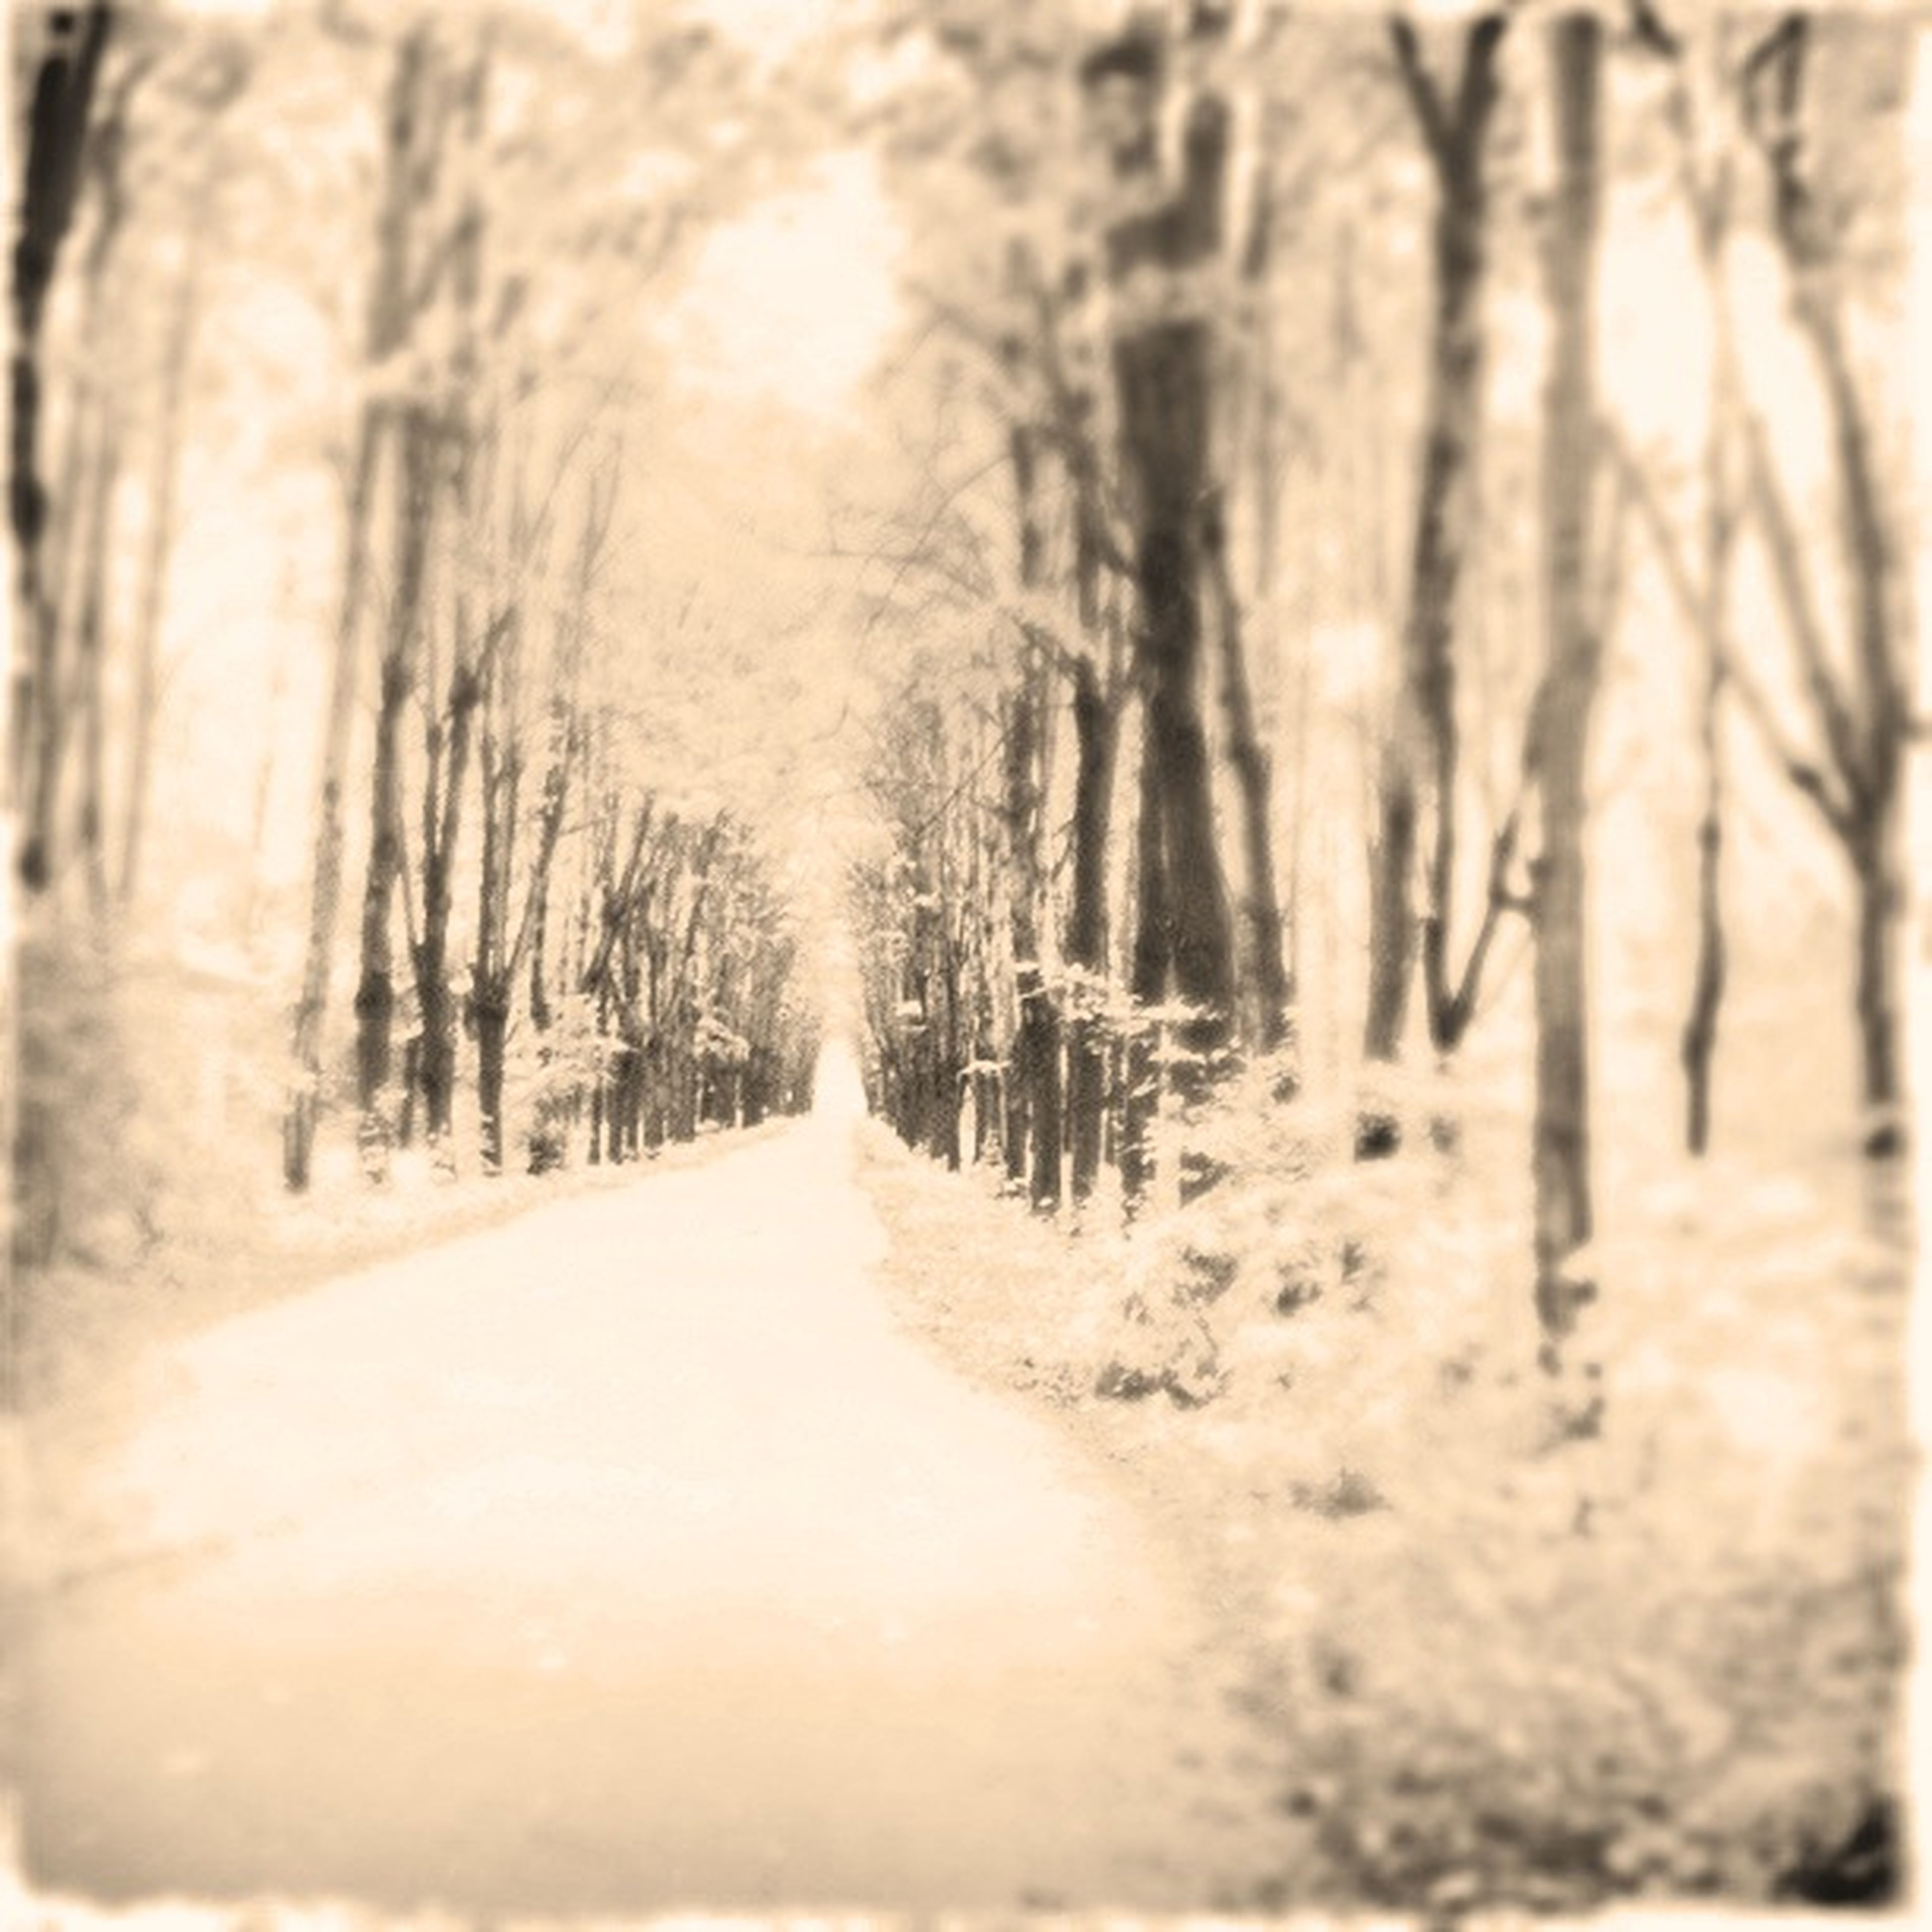 the way forward, tree, diminishing perspective, tranquility, vanishing point, forest, nature, road, tranquil scene, transportation, winter, surface level, snow, empty road, dirt road, beauty in nature, no people, growth, landscape, outdoors